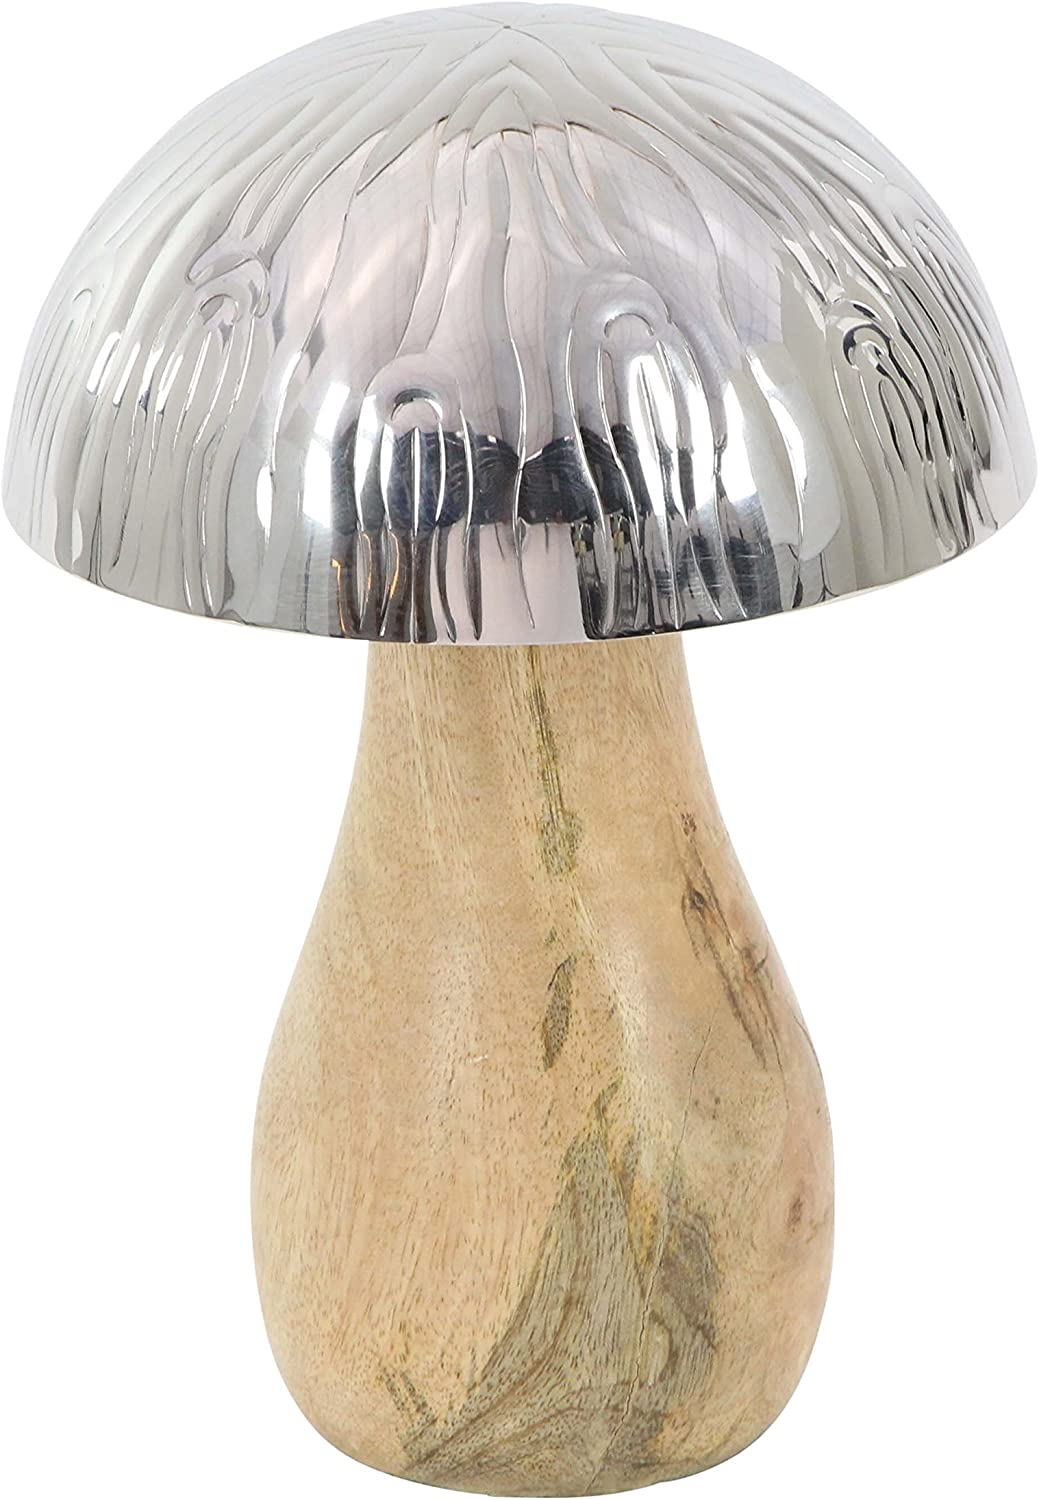 "Deco 79 90896 Wood and Metal Decorative Mushroom Sculpture, 8"" x 6"", Brown/Silver"